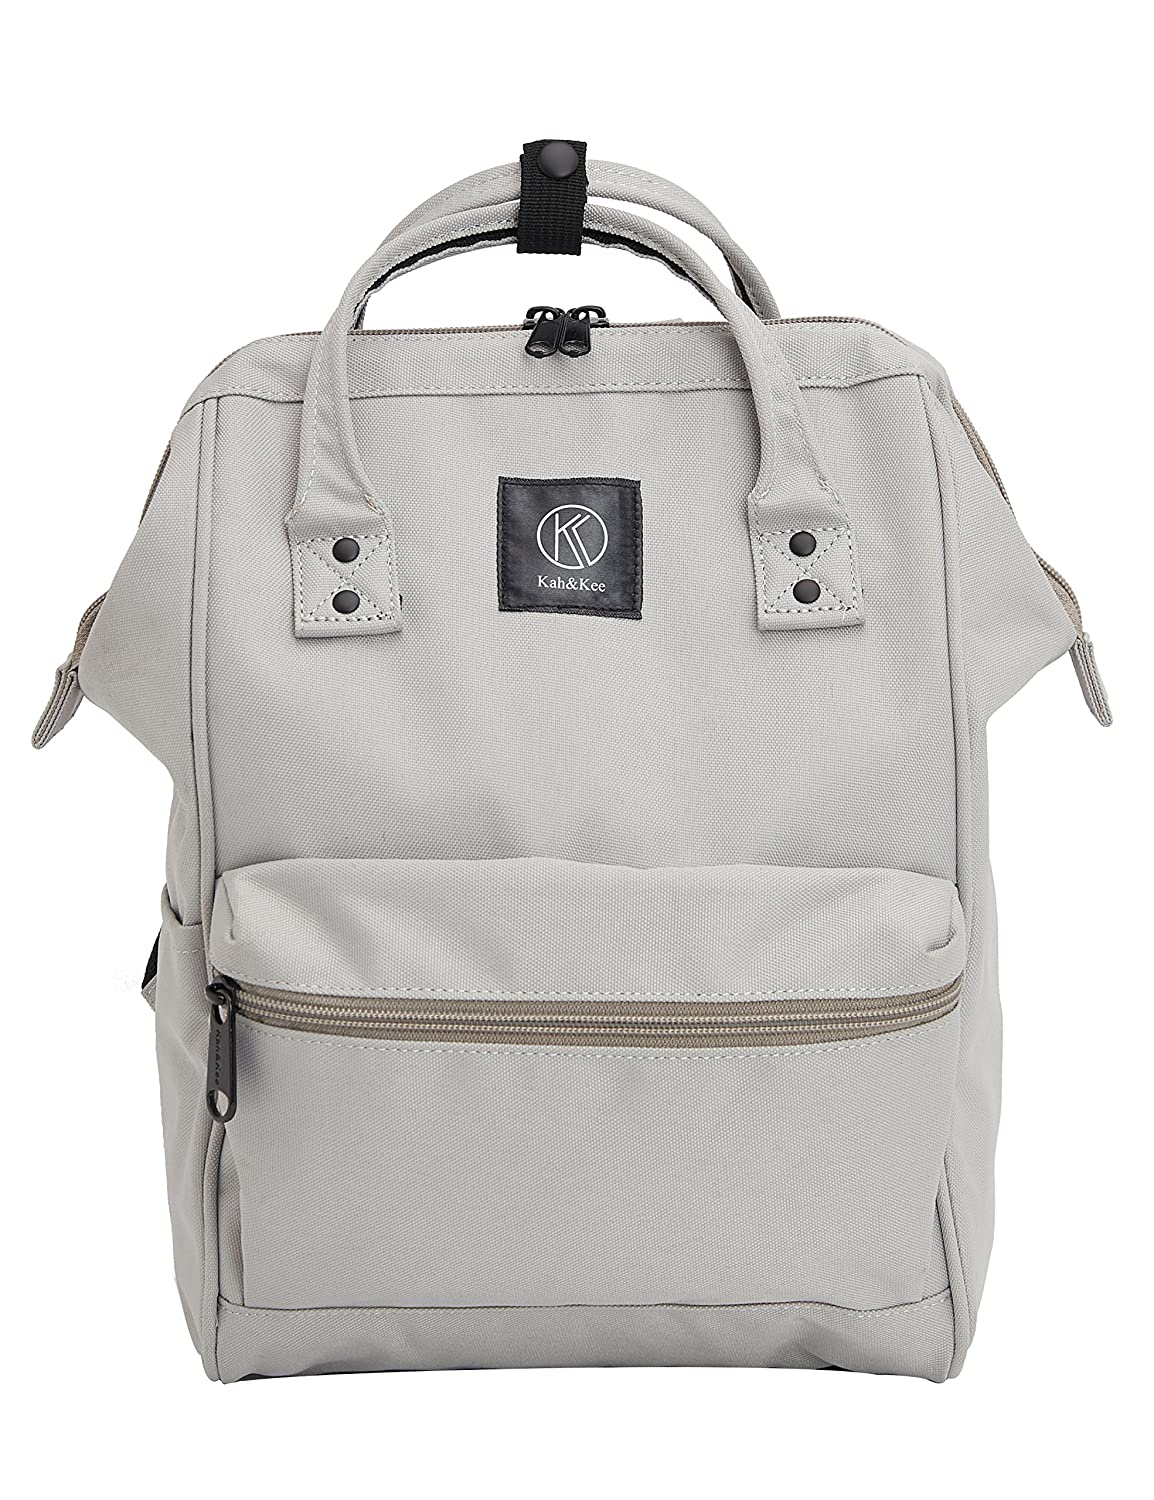 KAH& Kee Polyester Backpack Functional Anti-Theft Travel School Laptop for Men Women (Light Grey*Pink)